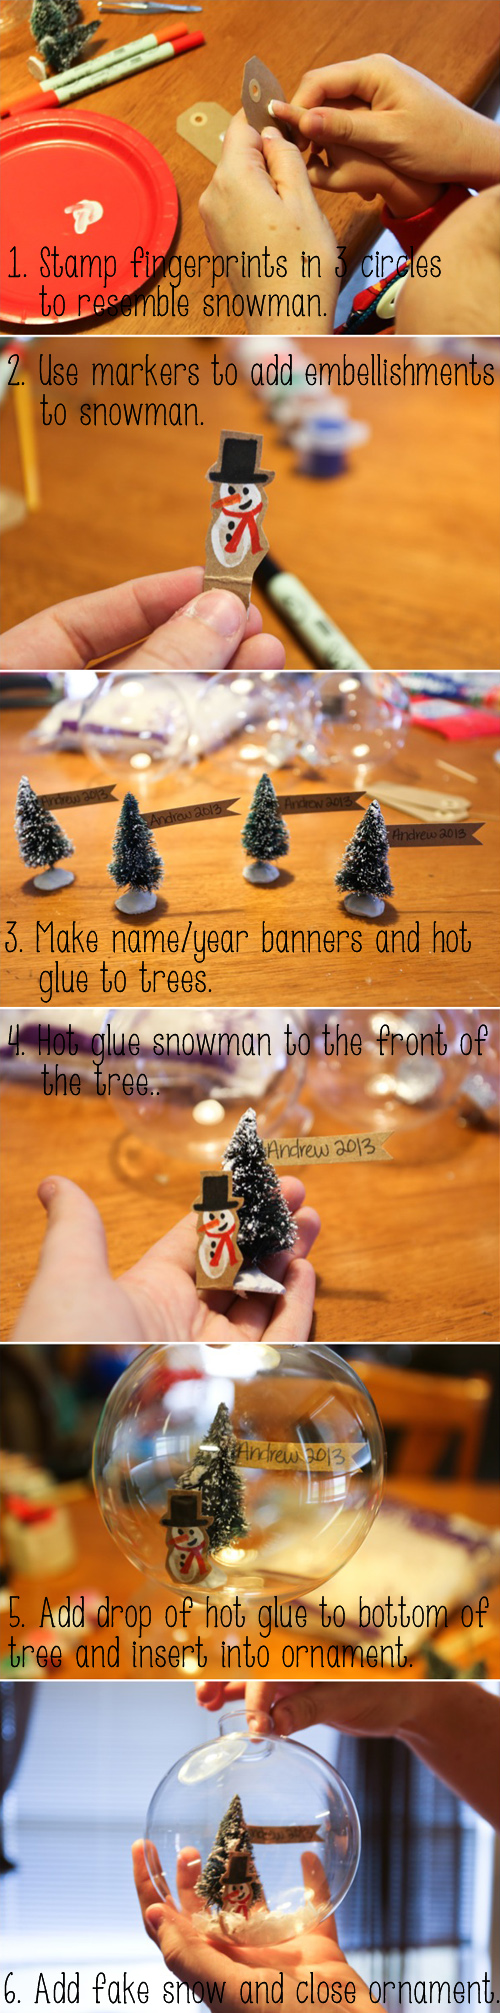 Snow Globe Instructions